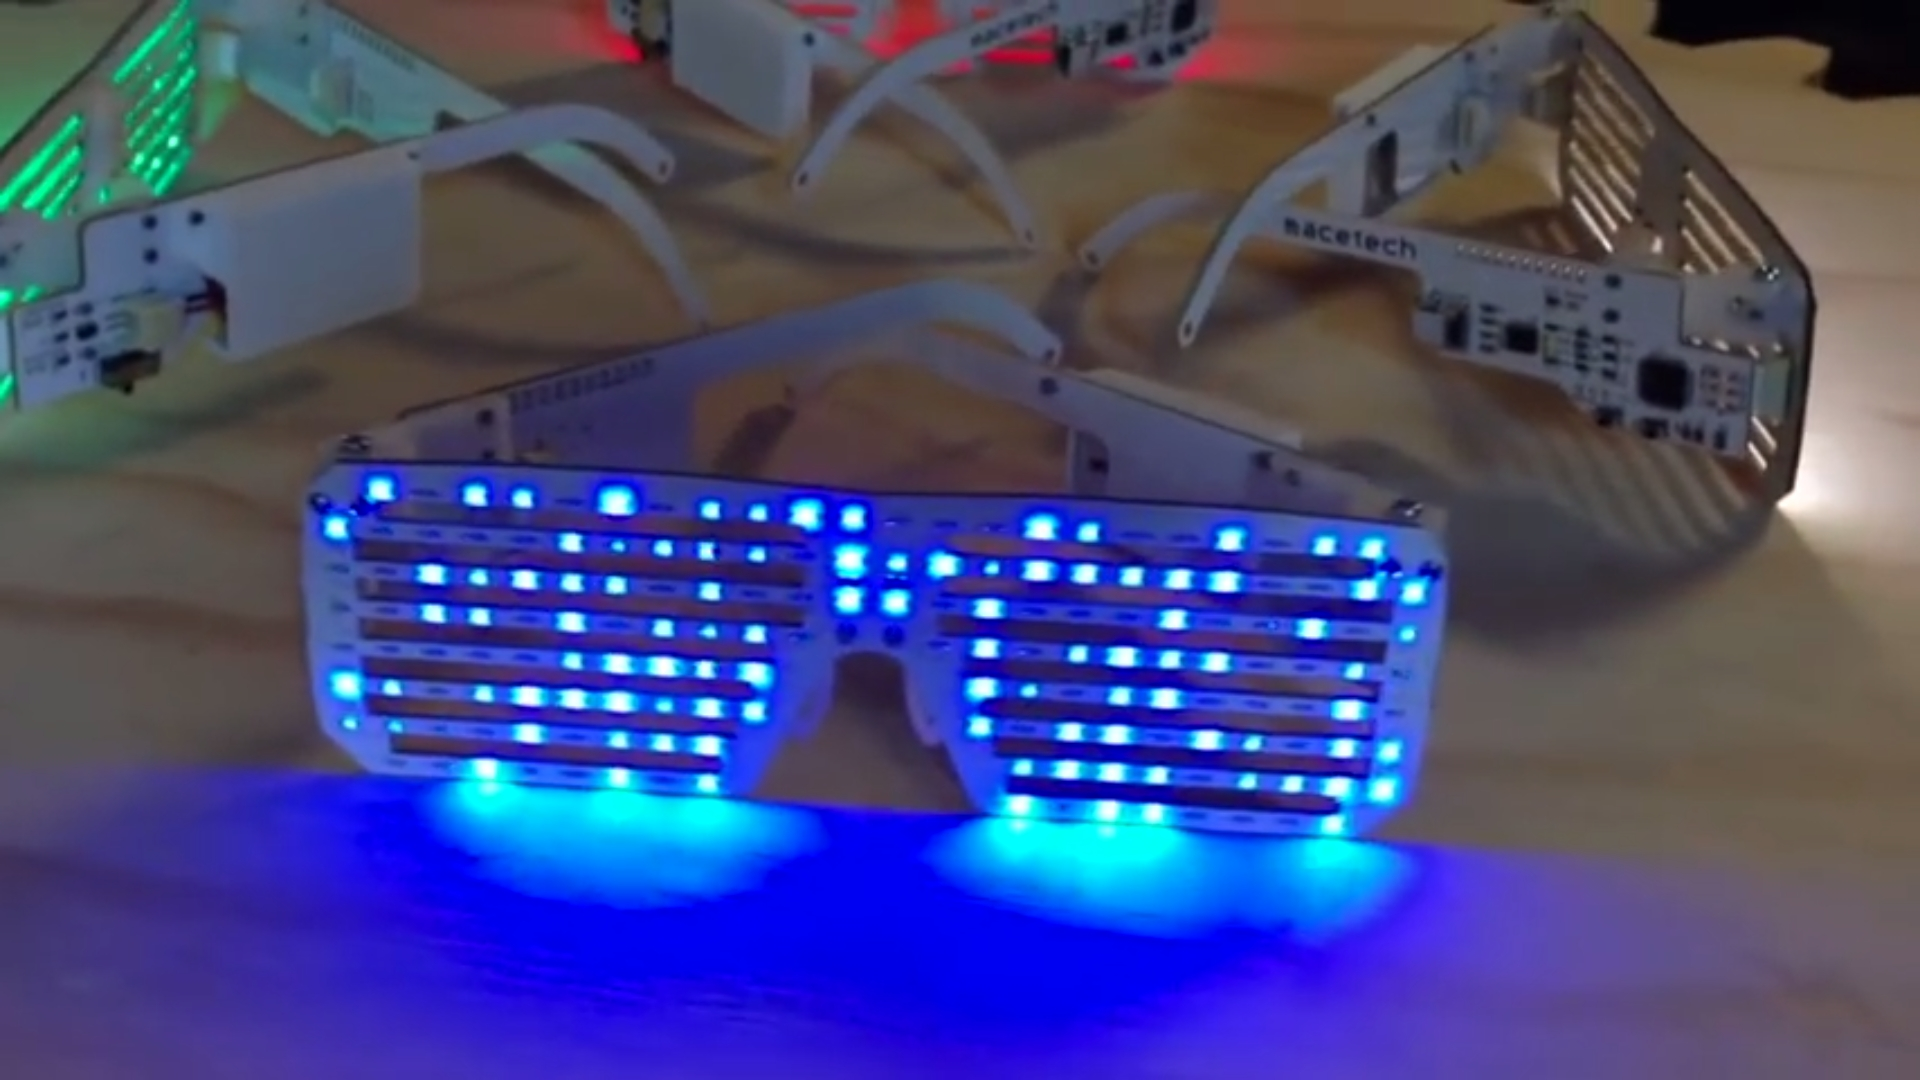 New and improved LED Matrix Shades come with a choice of blue, green, red, or white LEDs.